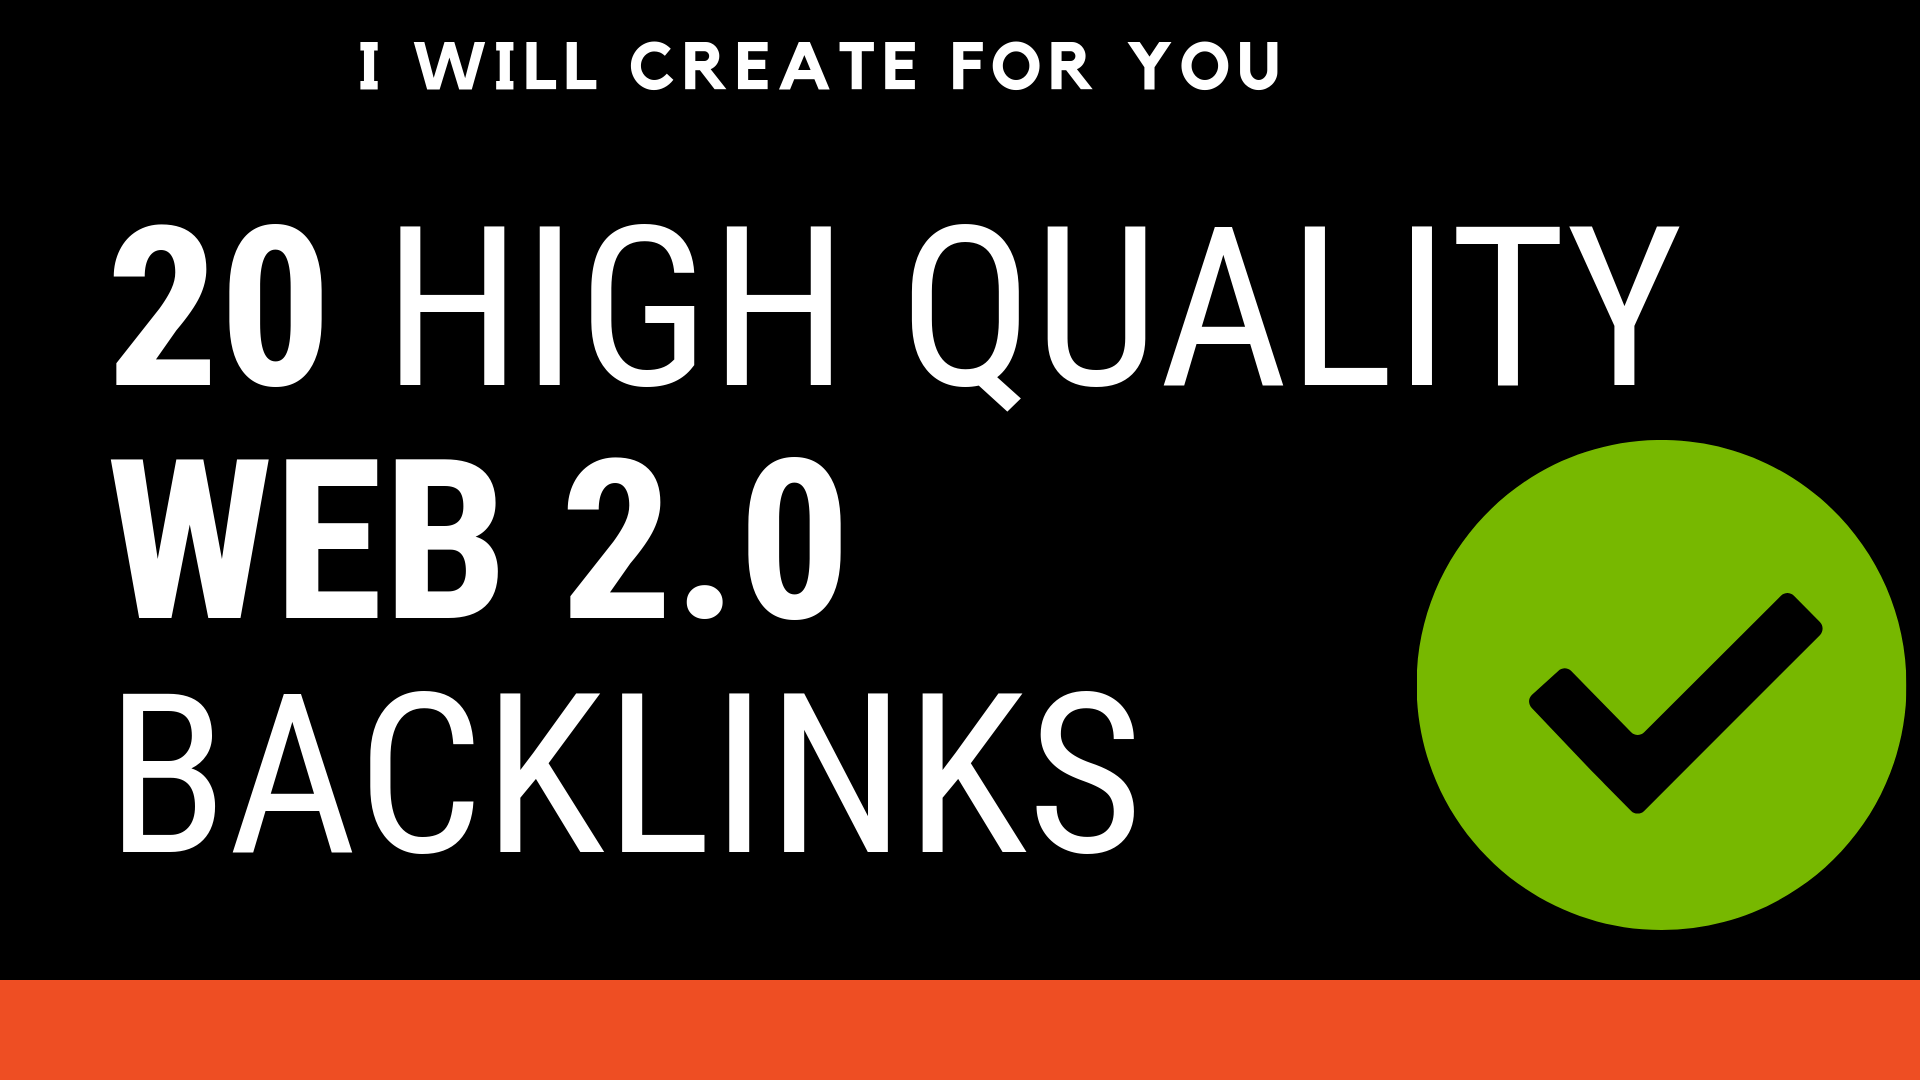 Create Manually web 2.0 Backlinks + 20 Bookmarking On high PR website